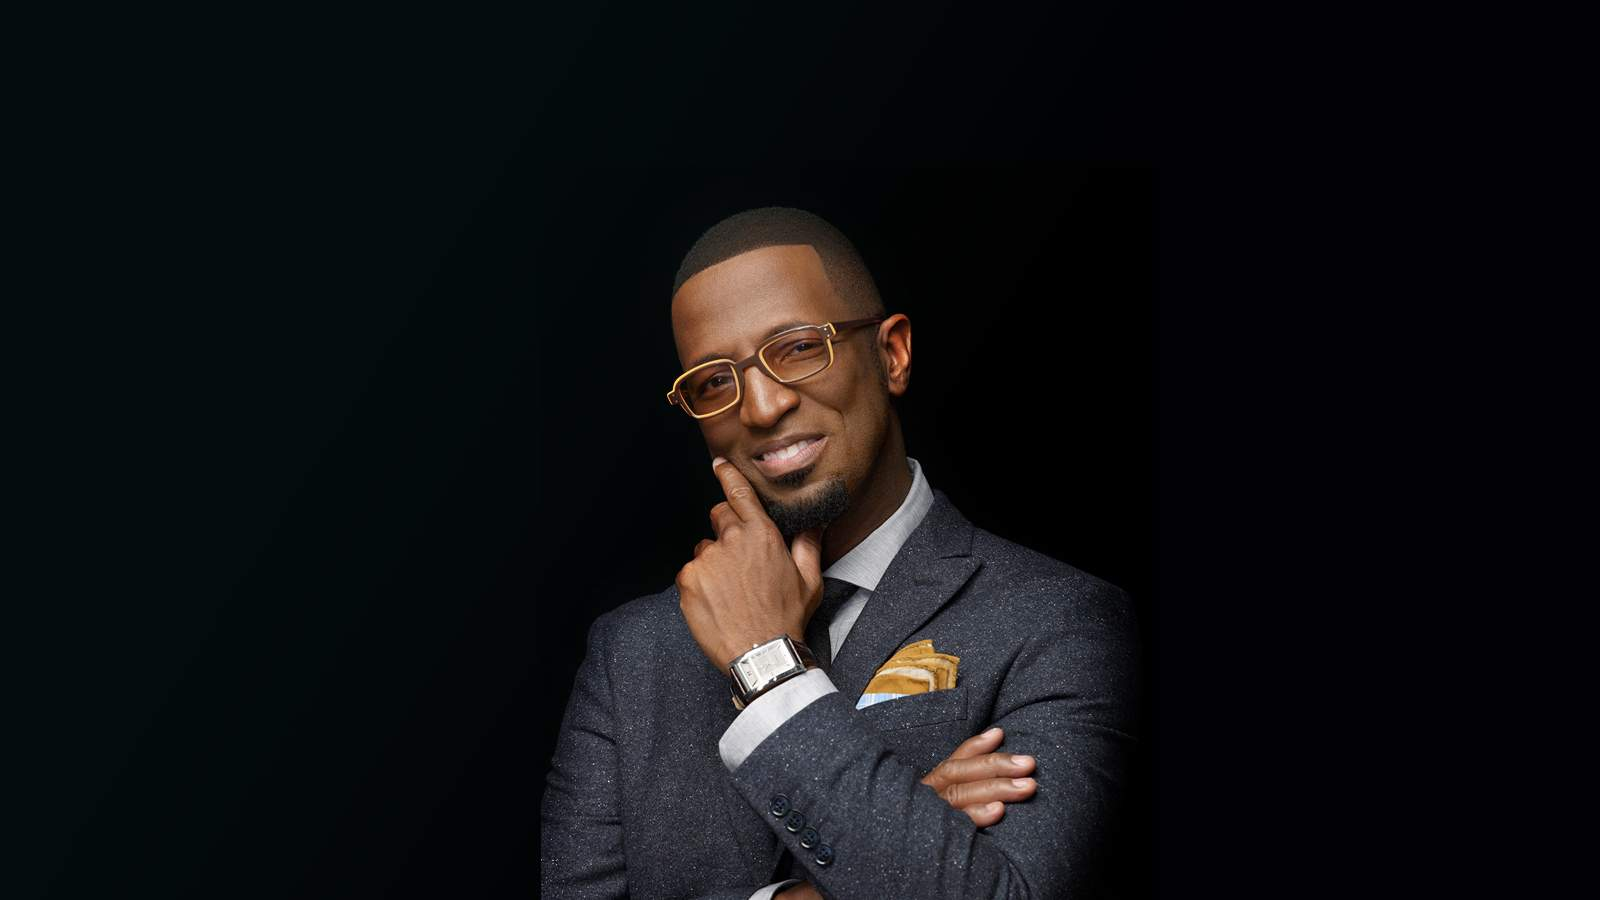 Rickey Smiley (Rescheduled from 4/19/2020)